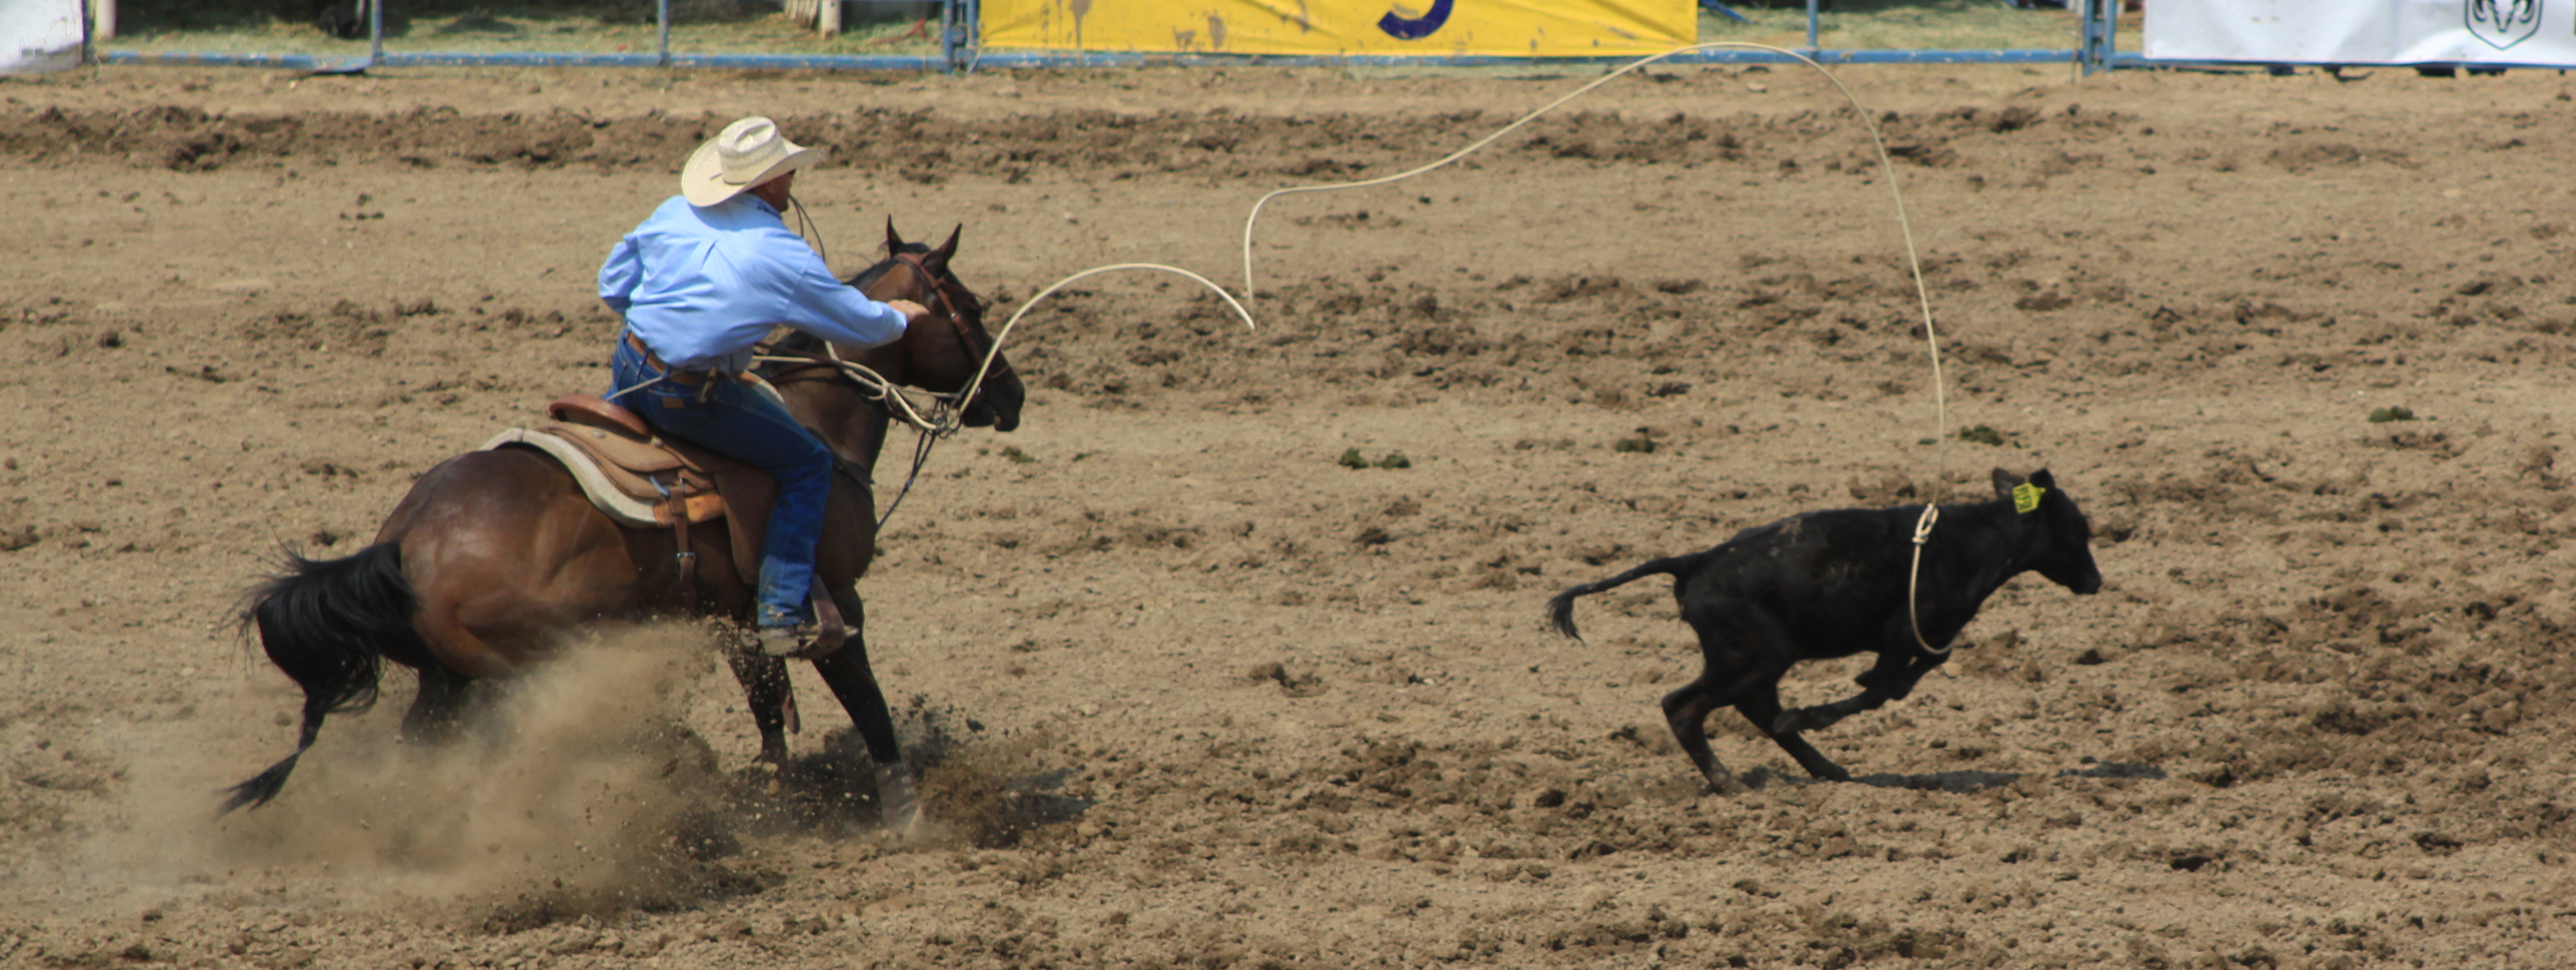 Rodeo_3389